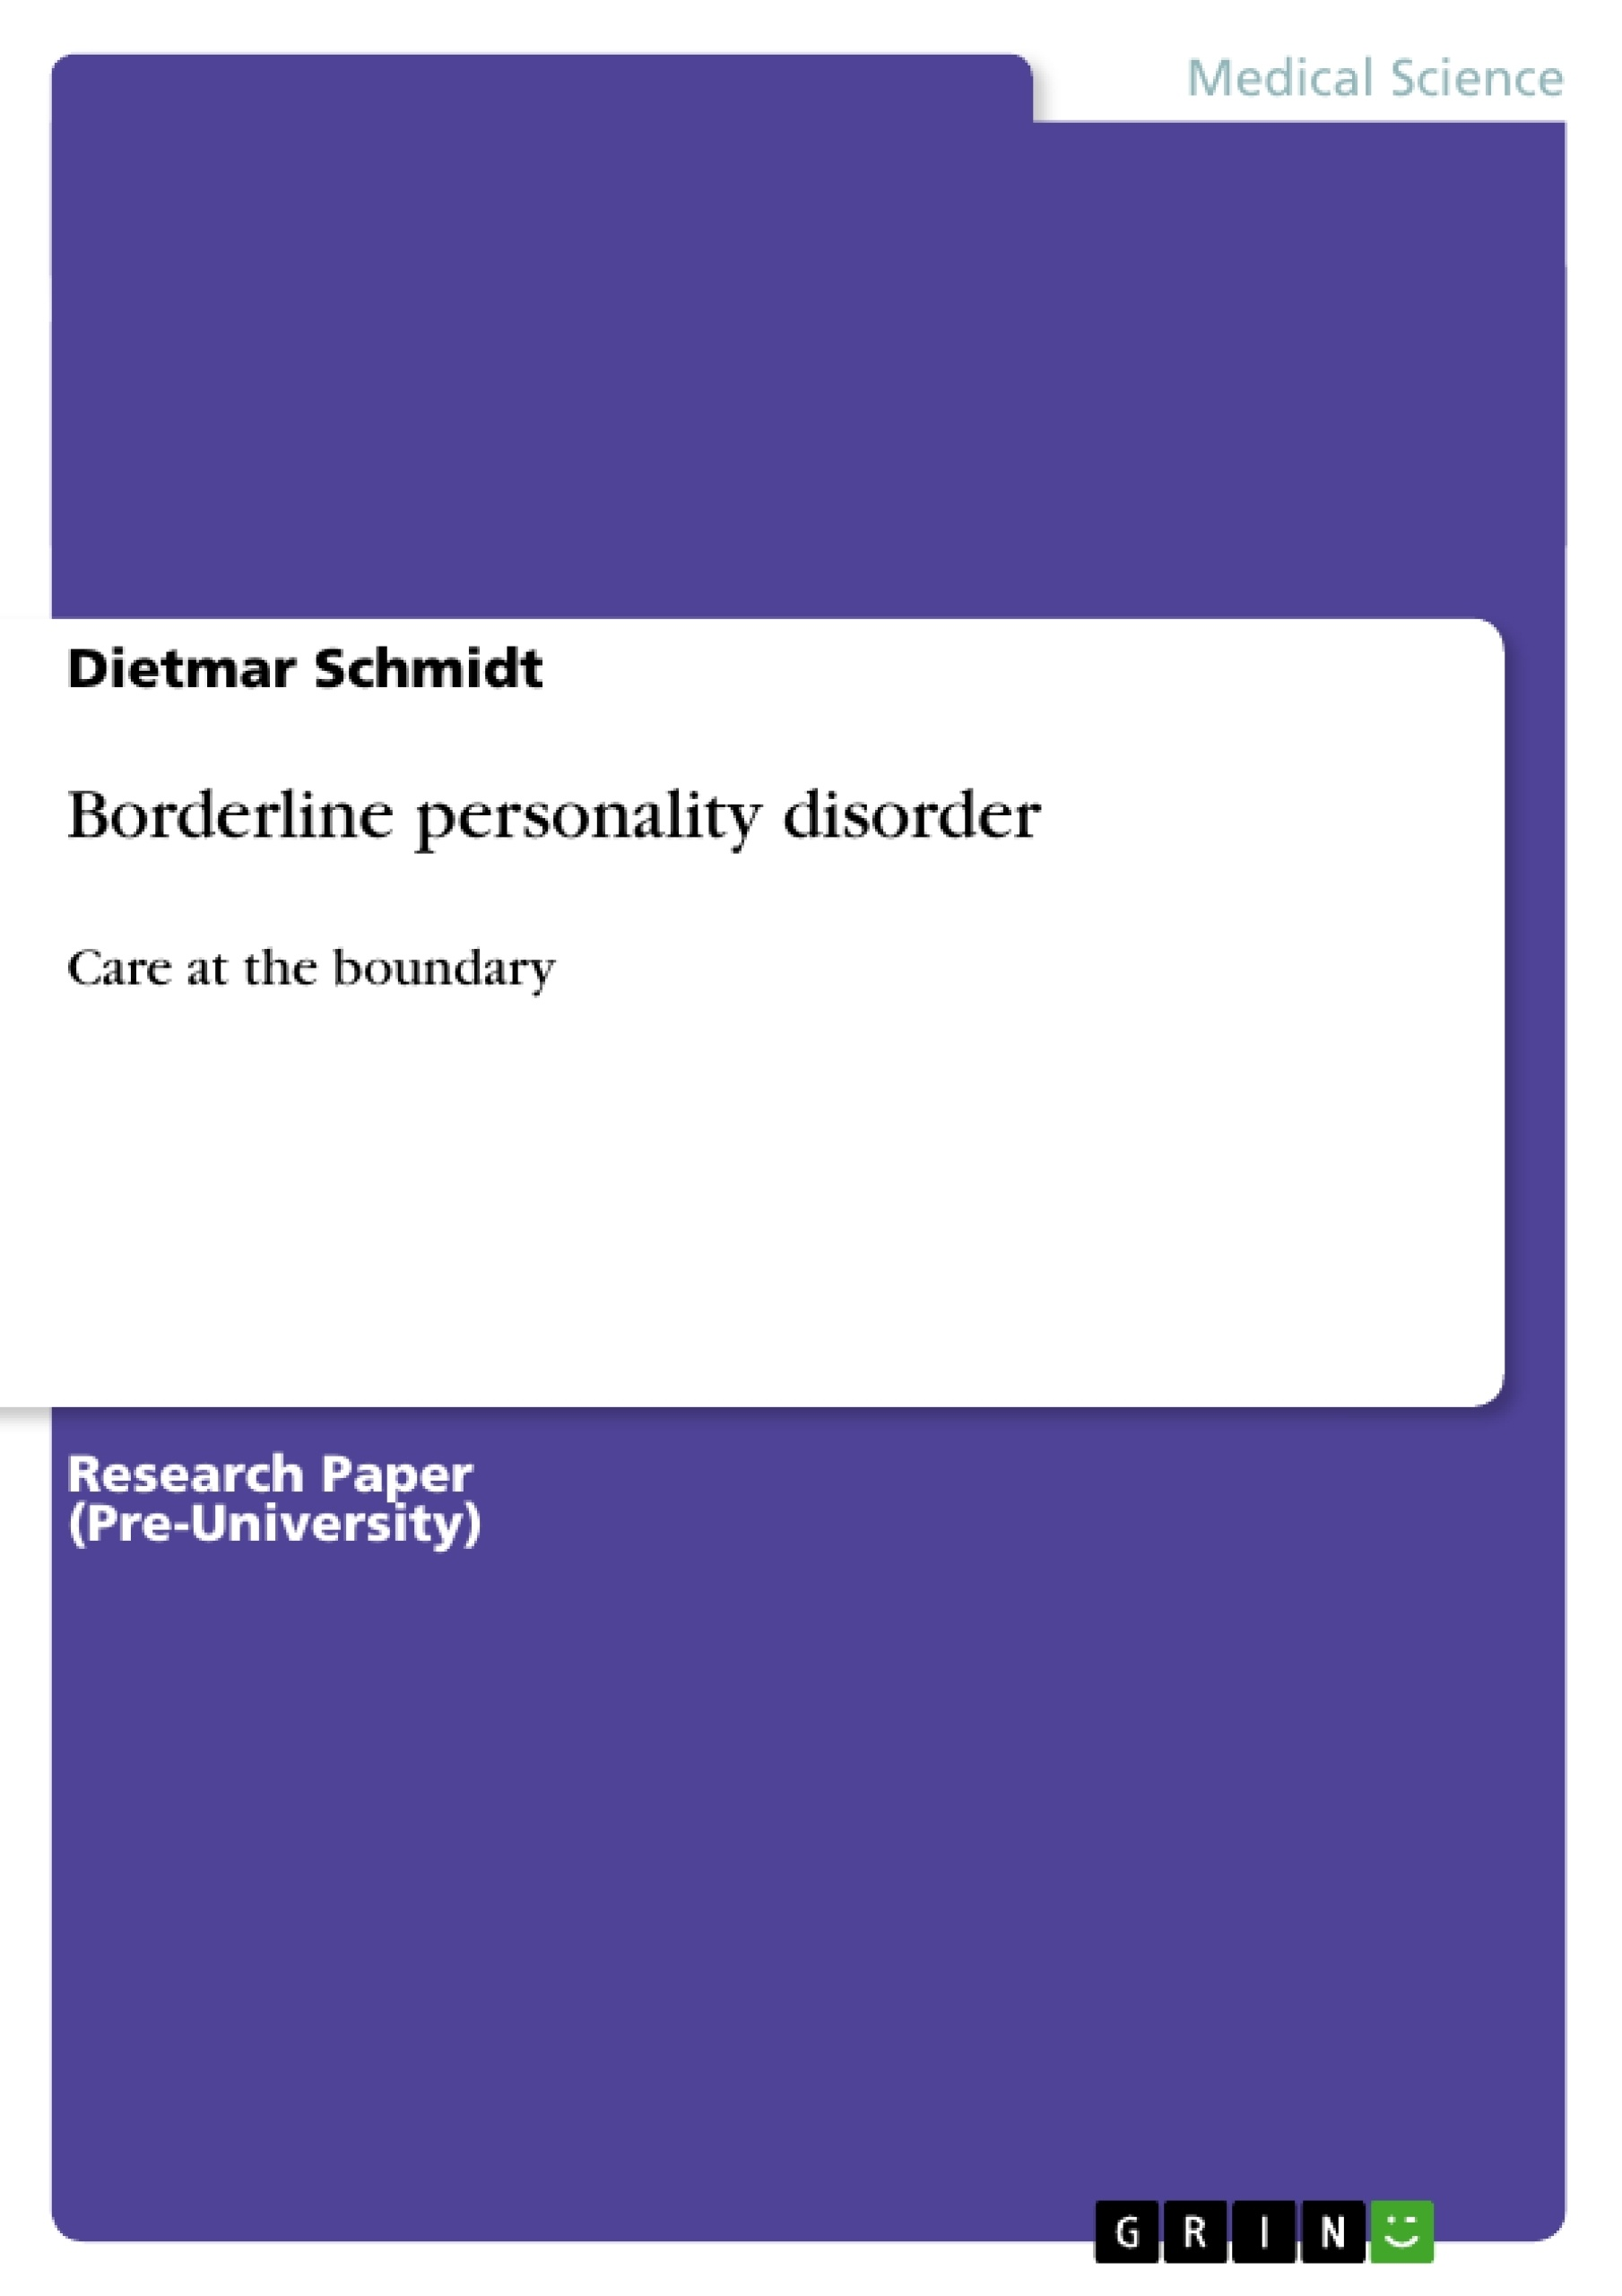 Borderline personality disorder essay – Help Your Studies